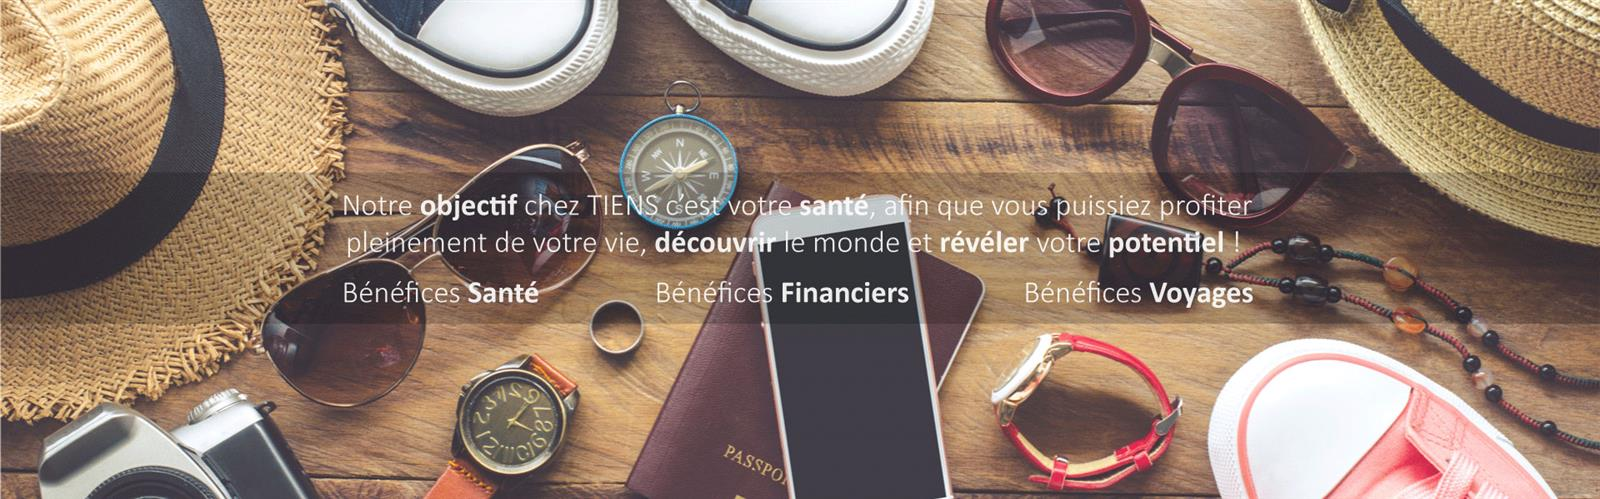 Opportunite TIENS France finance sante voyages bien etre succes